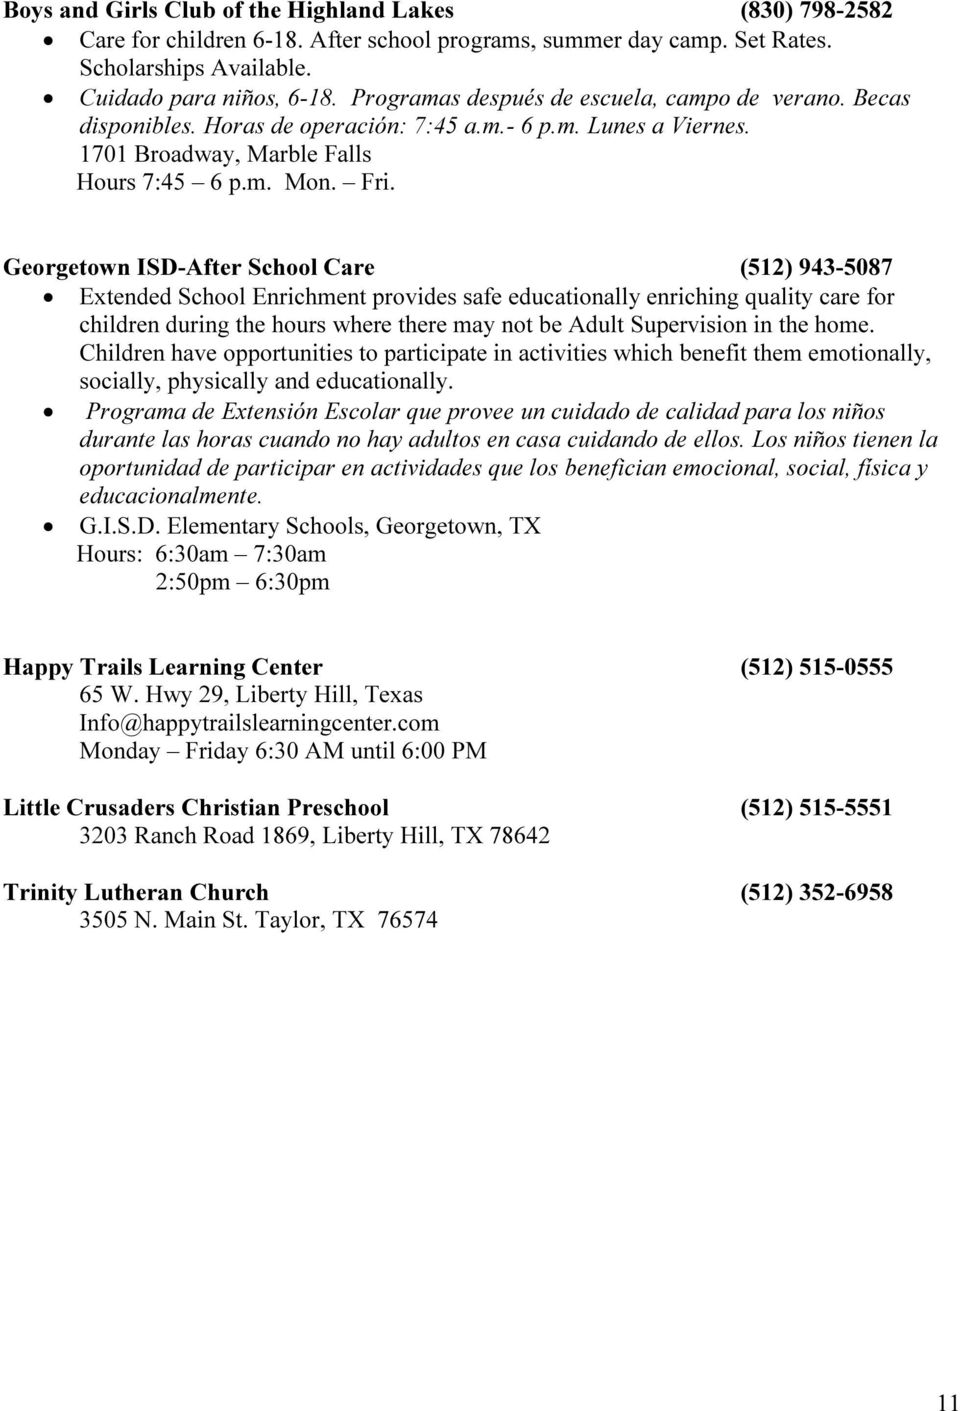 Georgetown ISD-After School Care (512) 943-5087 Extended School Enrichment provides safe educationally enriching quality care for children during the hours where there may not be Adult Supervision in